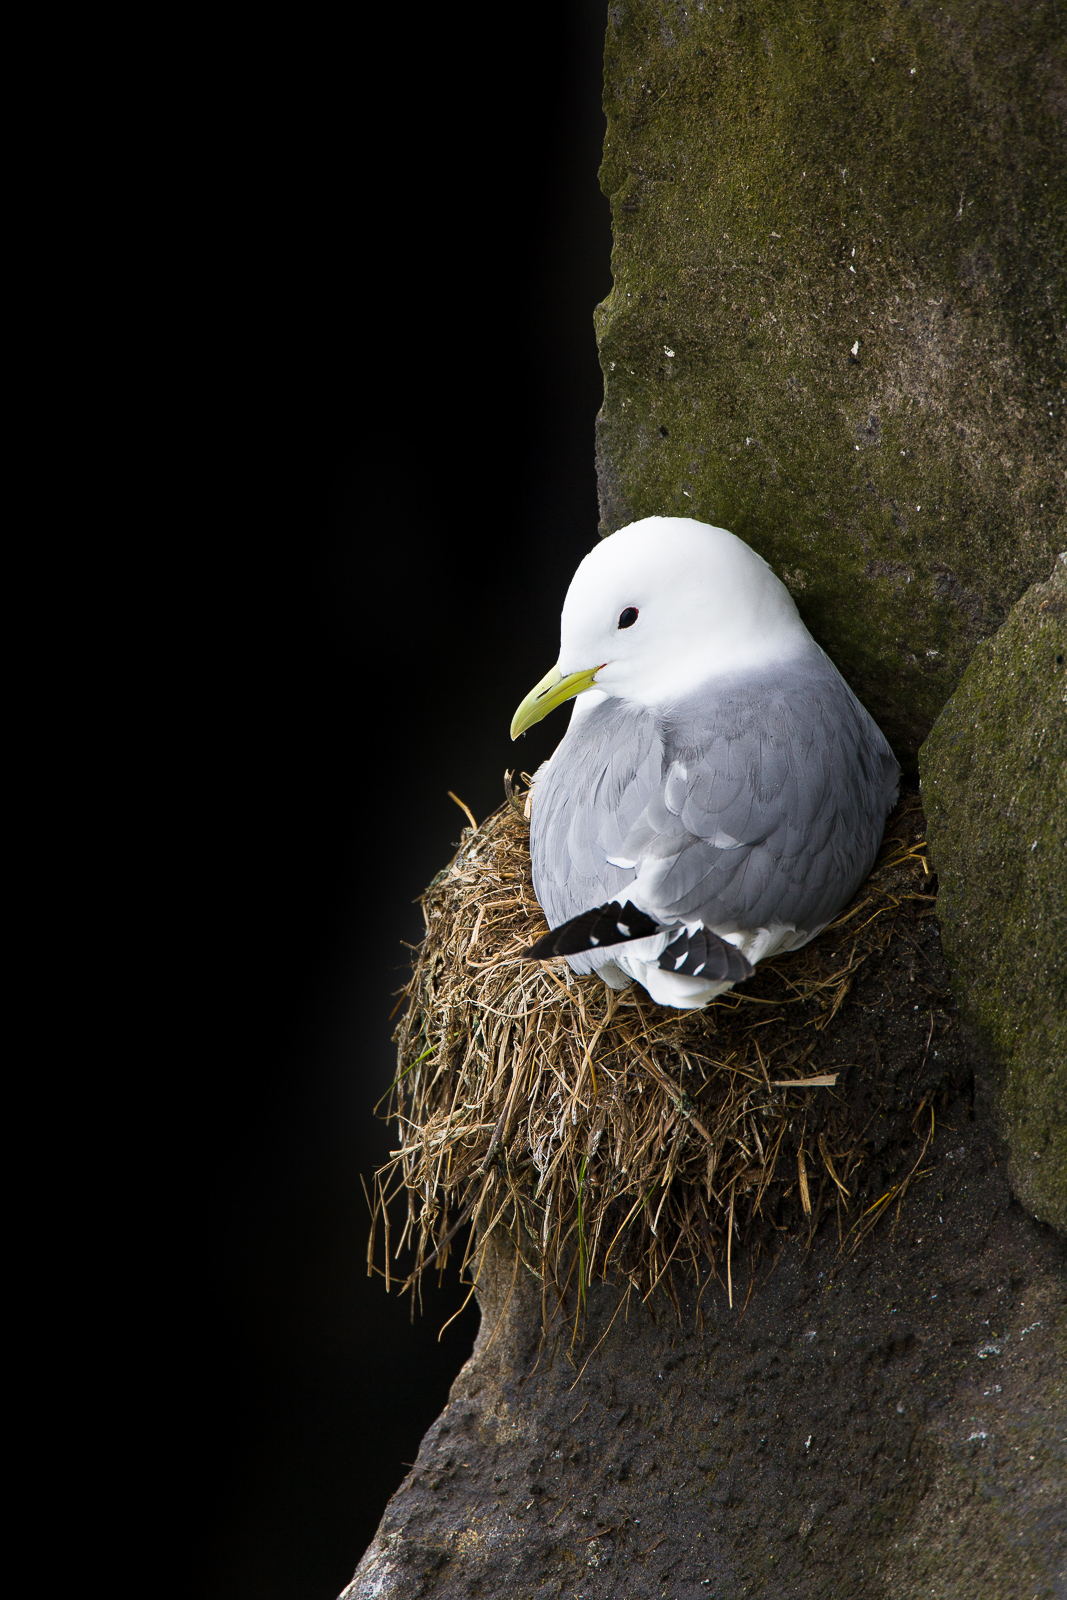 Tucked into a cleft this Black-legged Kittiwake makes a home for the arriving chicks.